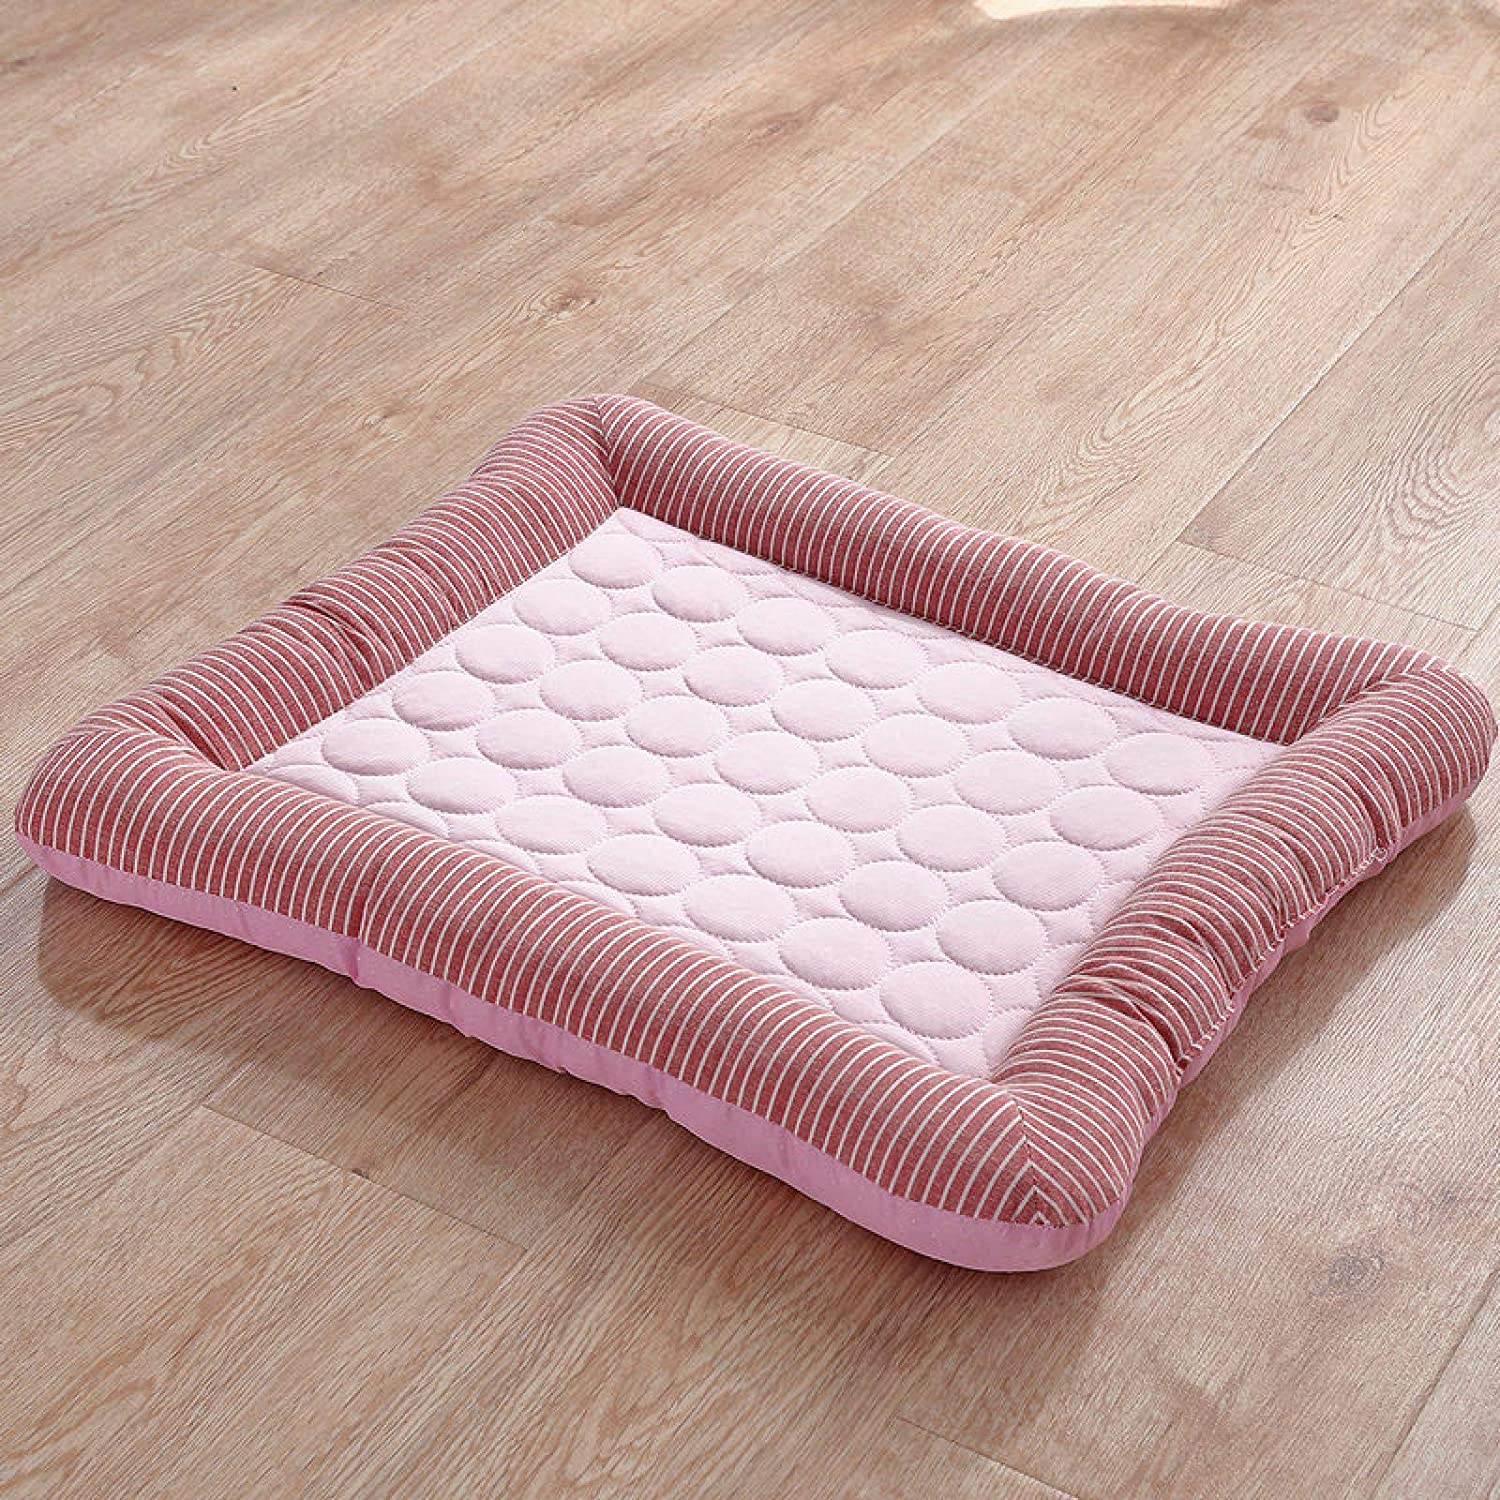 Dog Bed Cooling Mat Pet Max 41% OFF Pad Mattress Oakland Mall Breathable Cool Ice